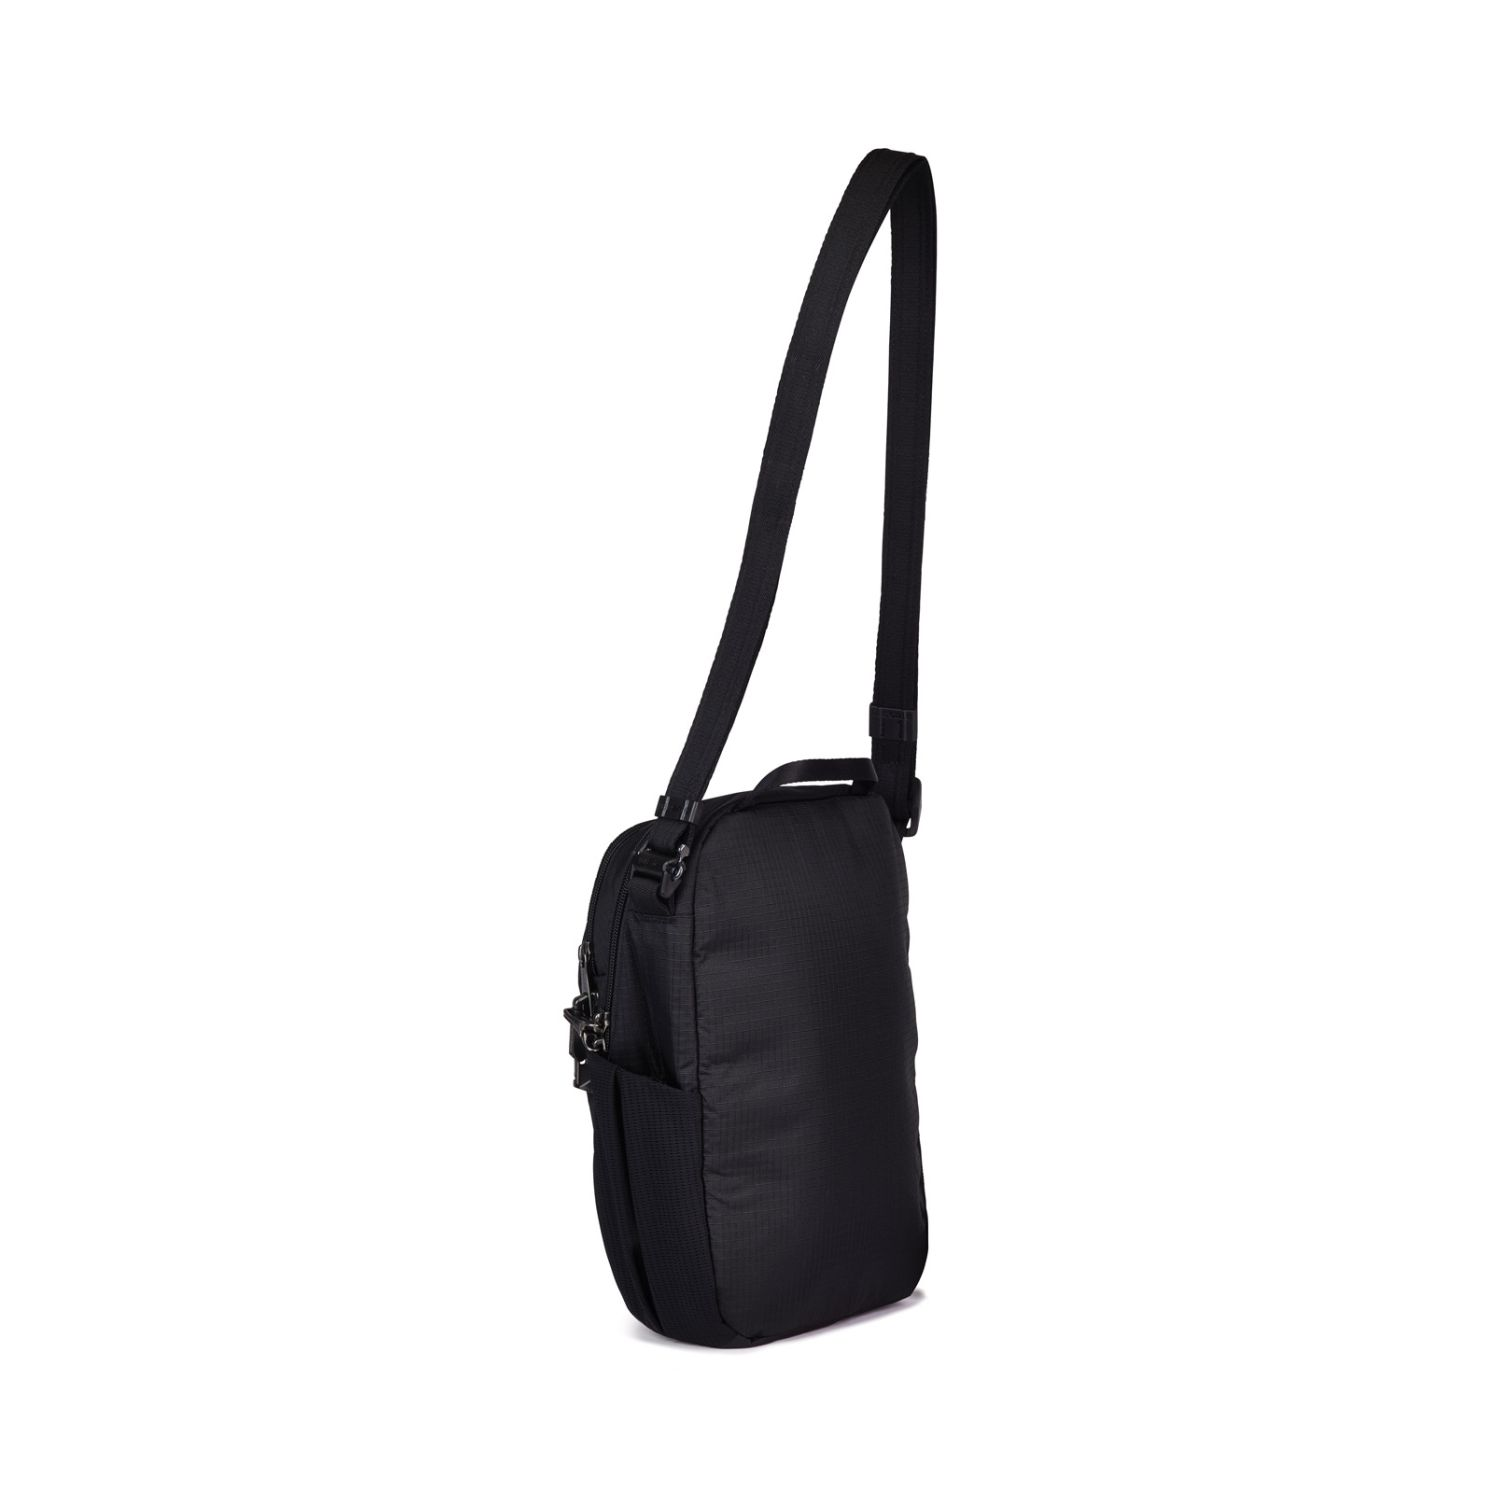 Buy Pacsafe Vibe 200 Anti-Theft Crossbody Bag (Jet Black) in ... a1a2a4046a058